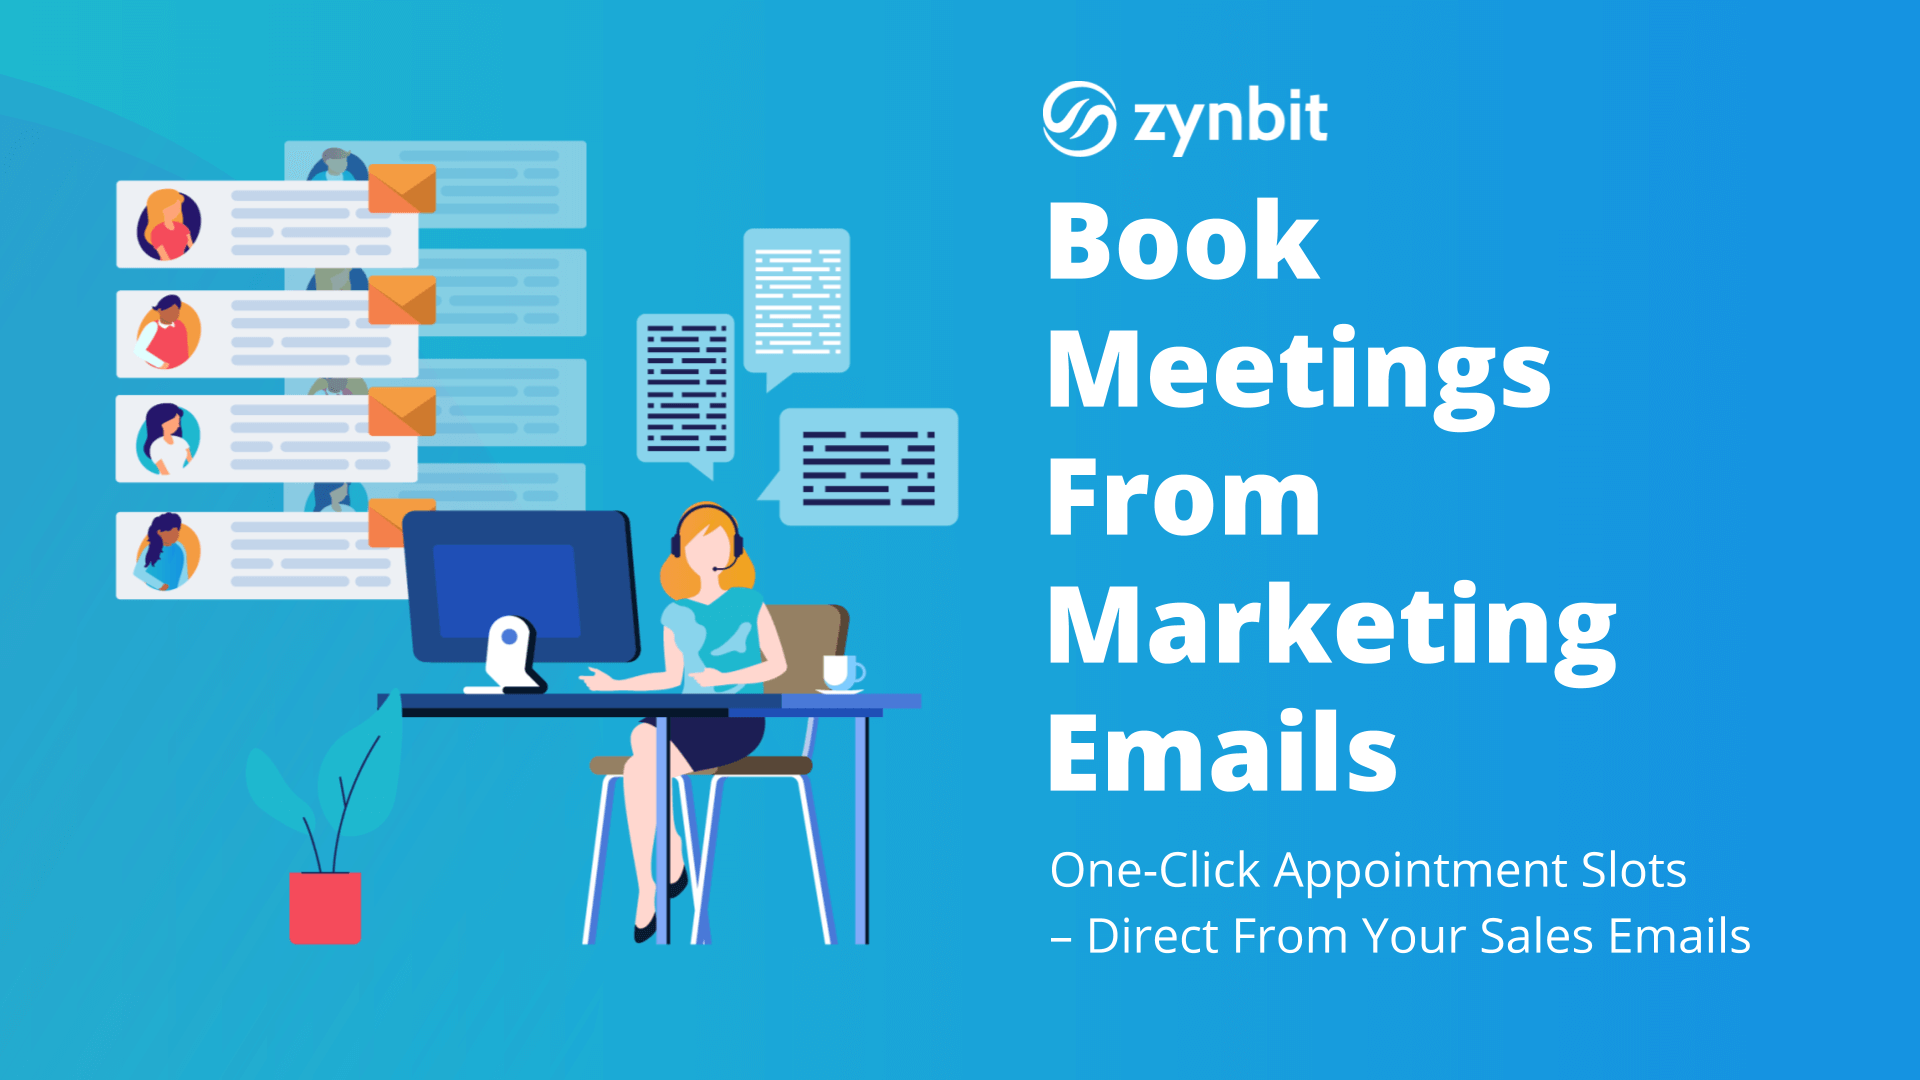 Book Meetings From Marketing Emails